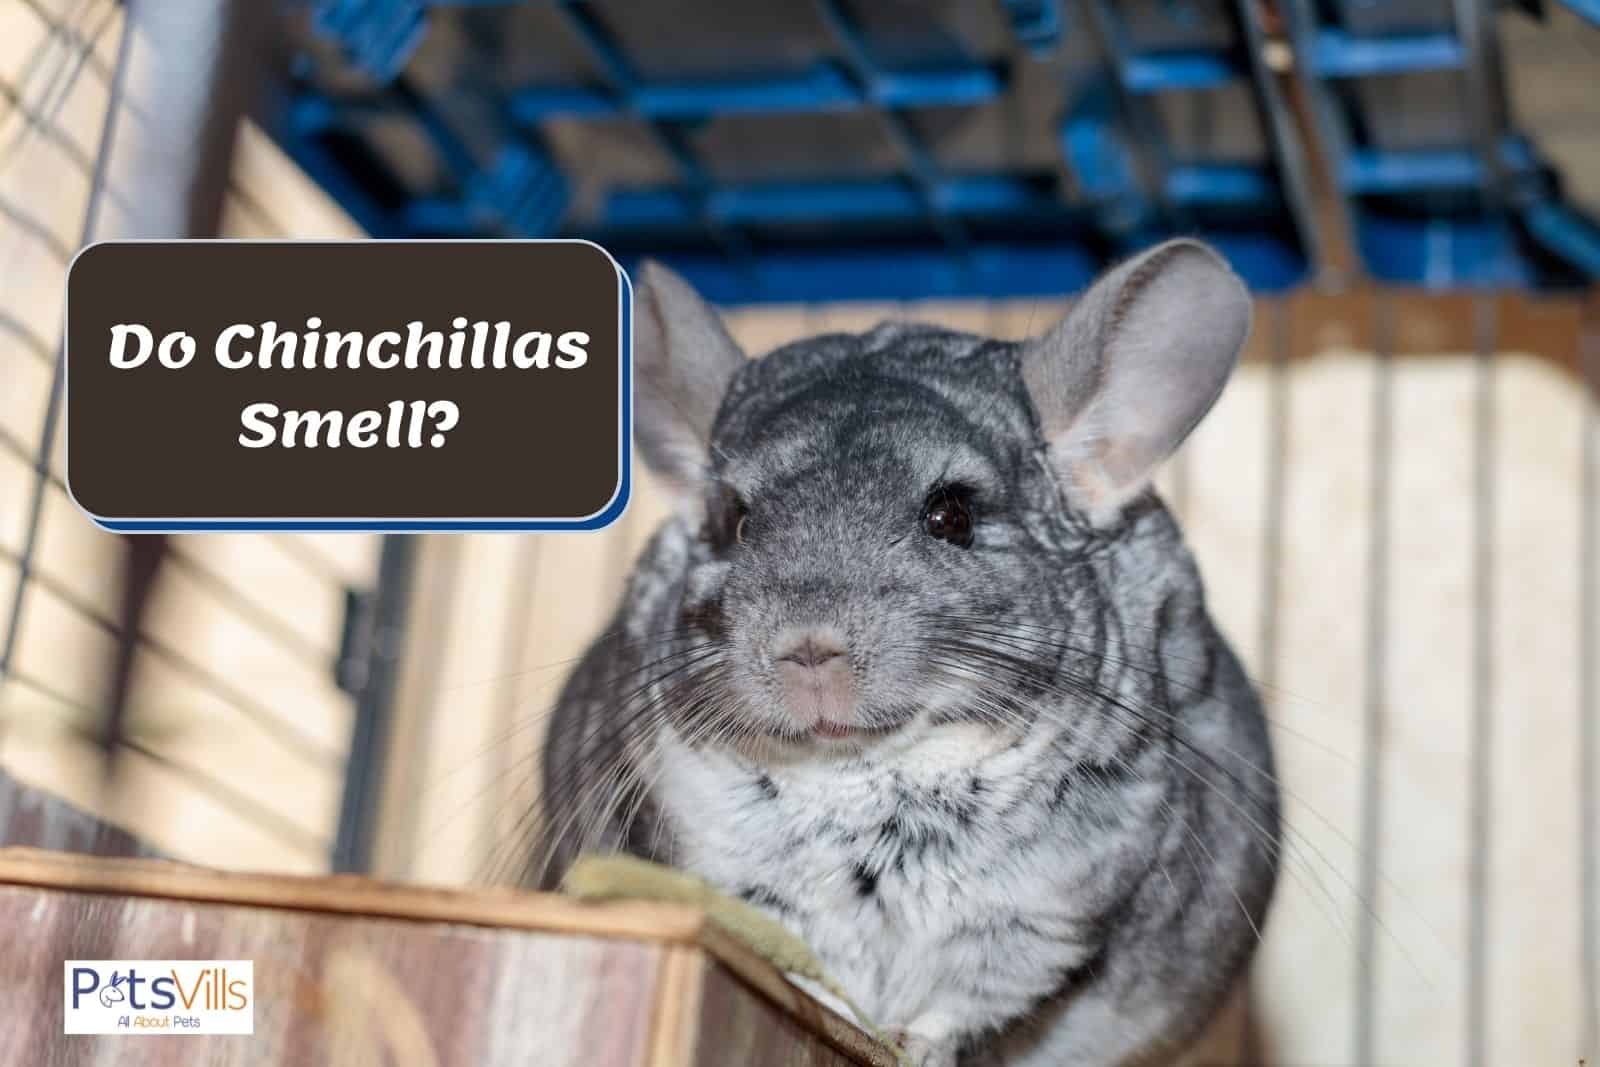 a chinchilla staring outside the cage